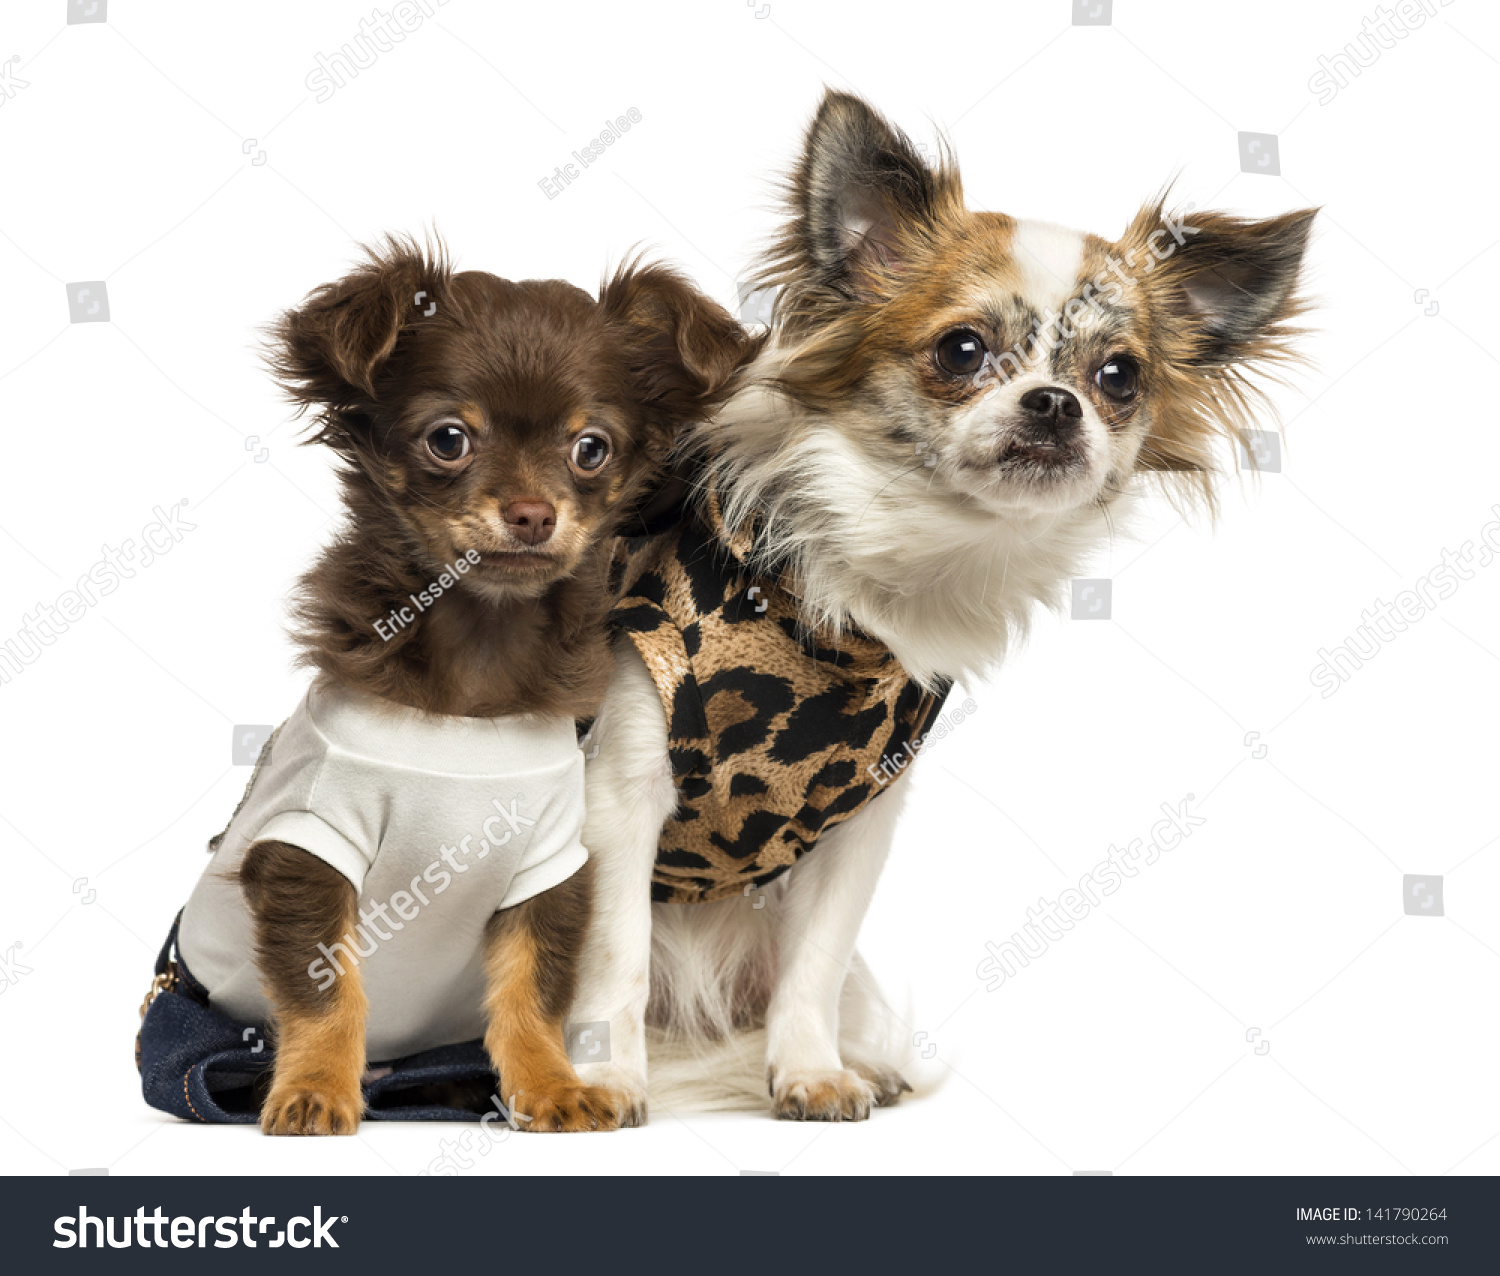 Dressed Up Chihuahua Puppies Sitting 3 And 9 Months Old Isolated